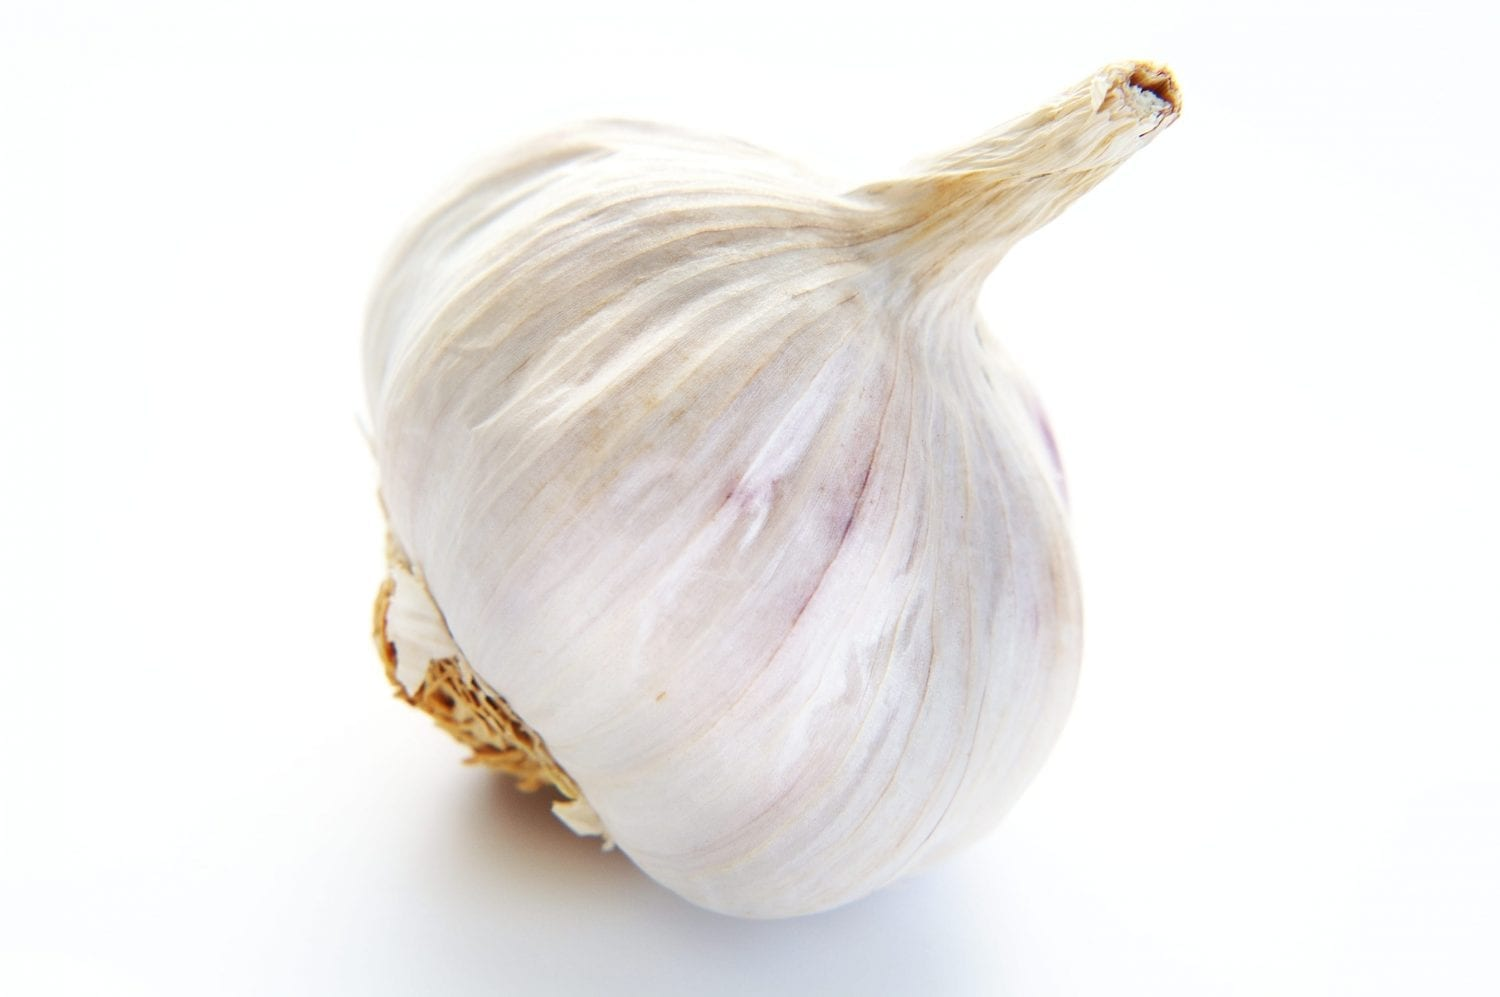 How to Use Garlic as a Natural Antibiotic, Antiseptic, Antifungal, and Antibacterial Home Remedy